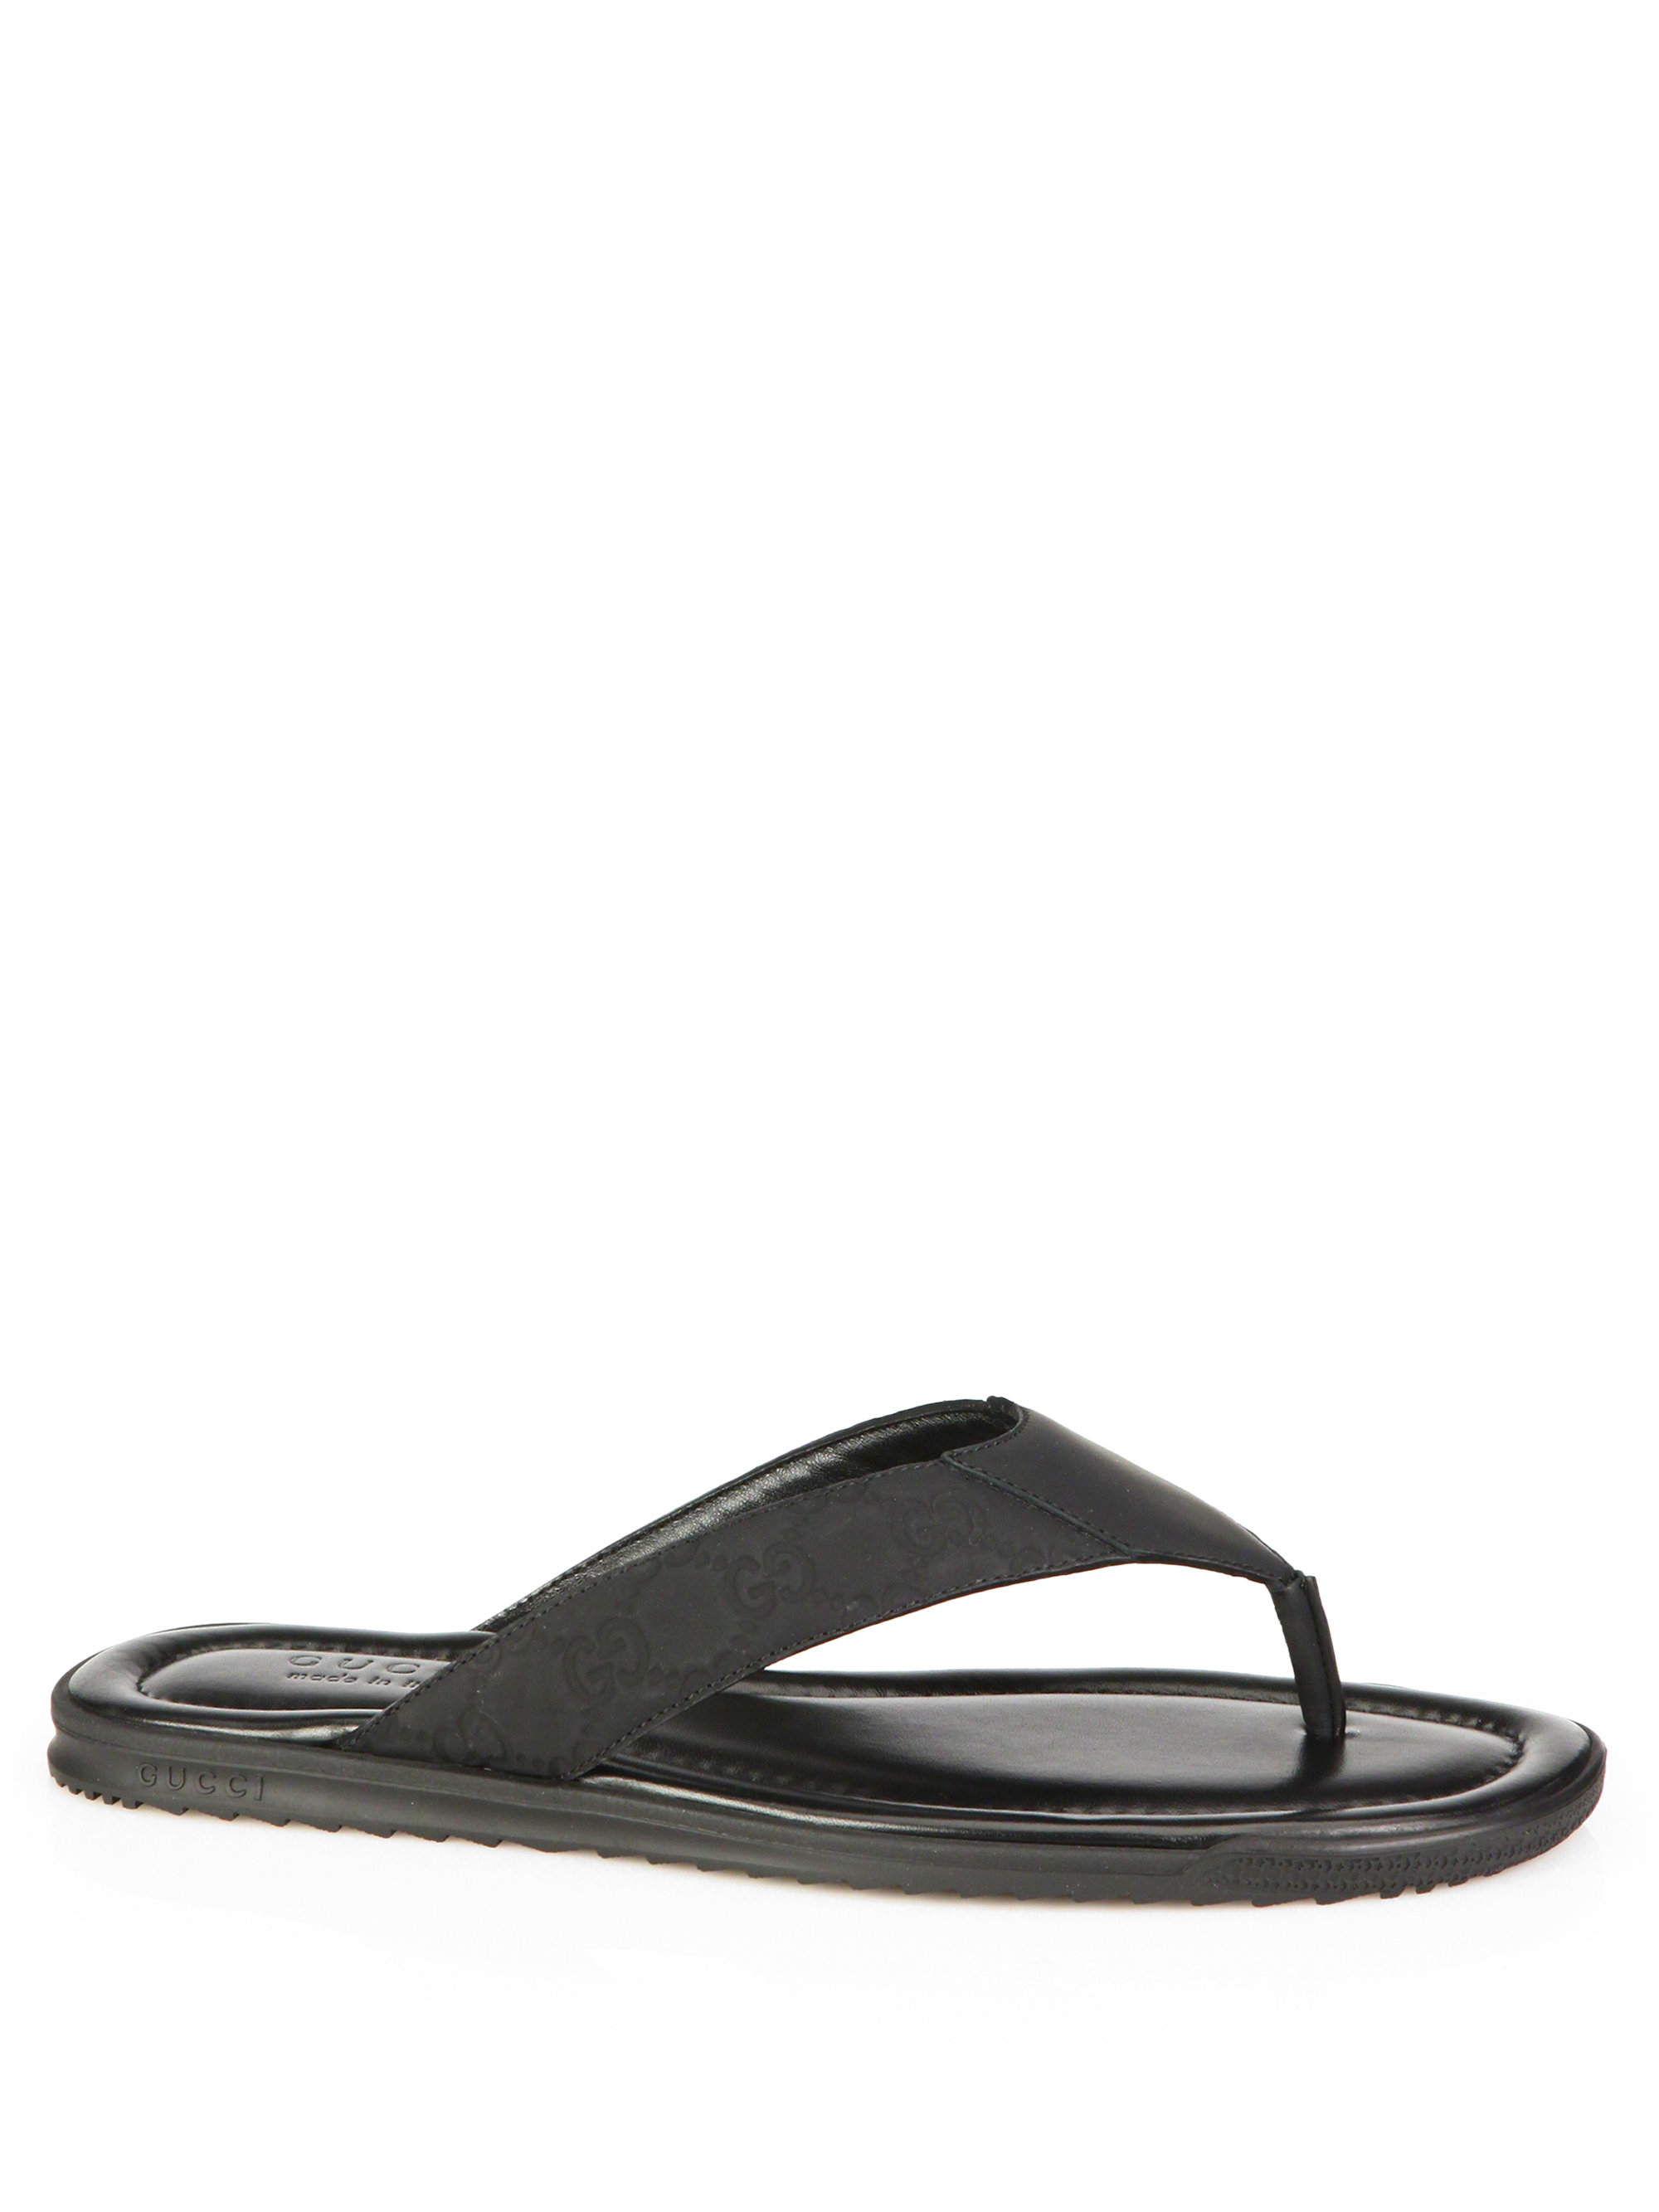 e930f965c818 Lyst - Gucci Rubberized Leather Gg Thong Flip Flops in Black for Men